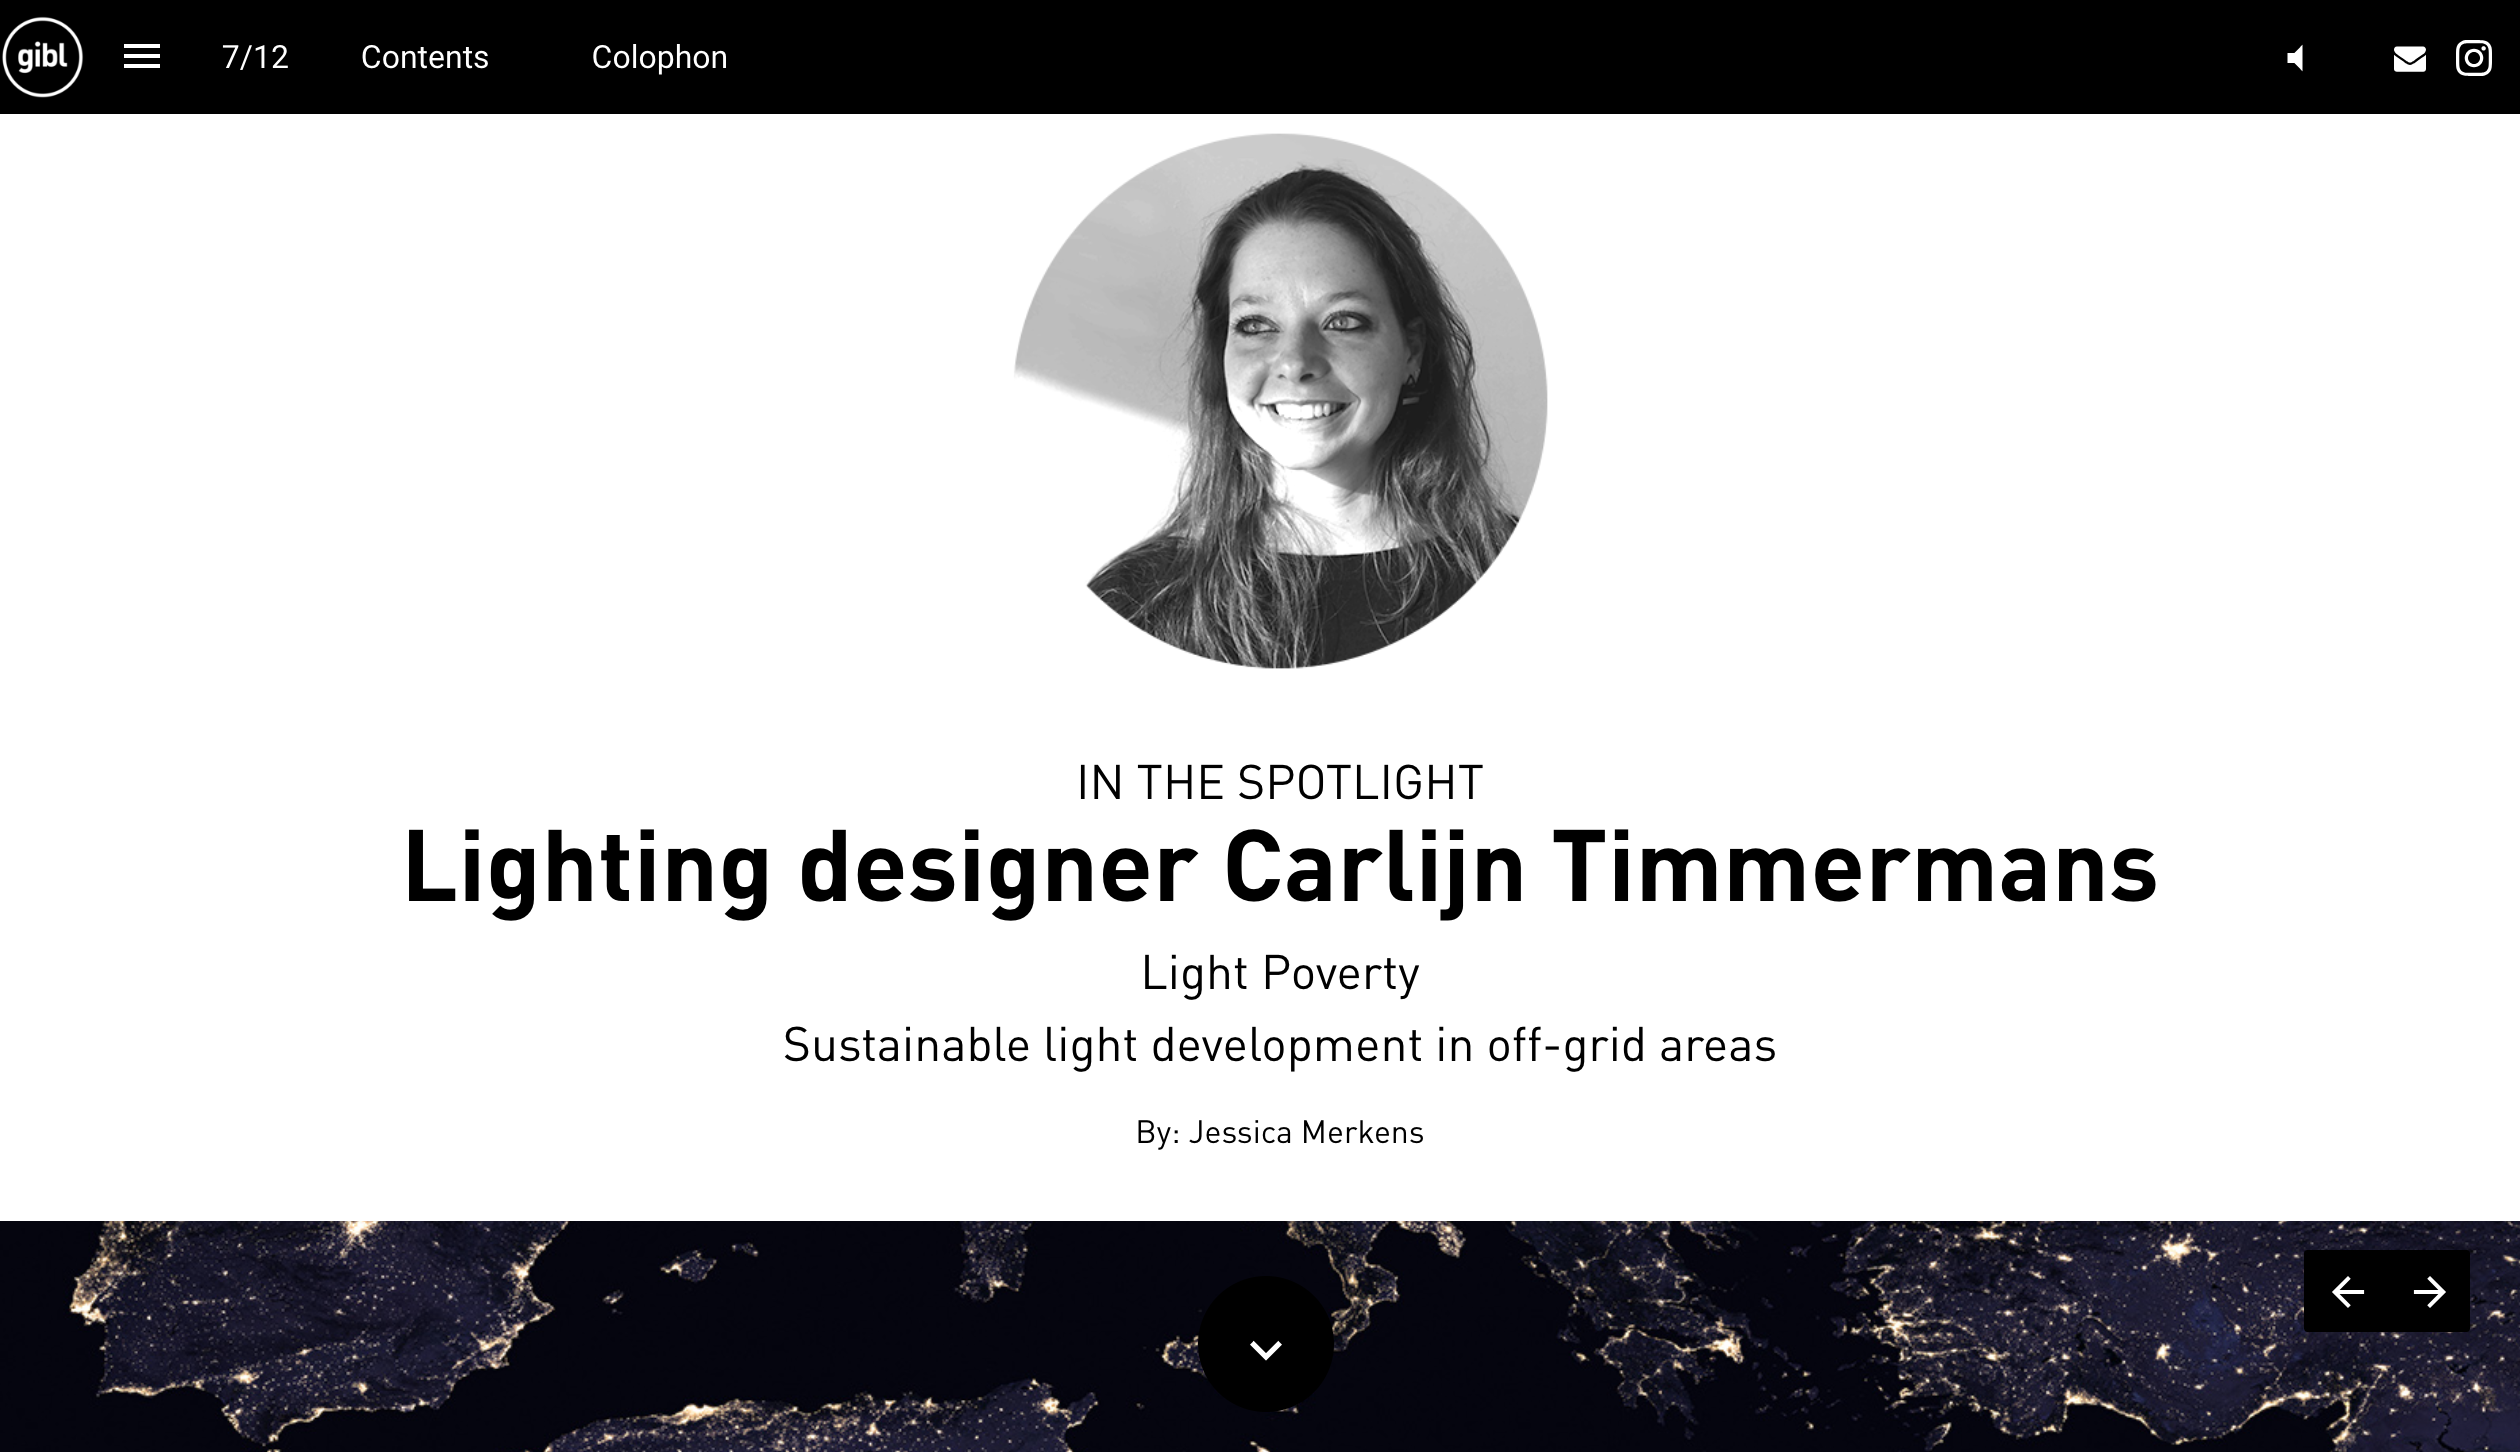 GIBL Get inspired by light magazine lighting designer Carlijn Timmermans sustainable light development by Jessica Merkens